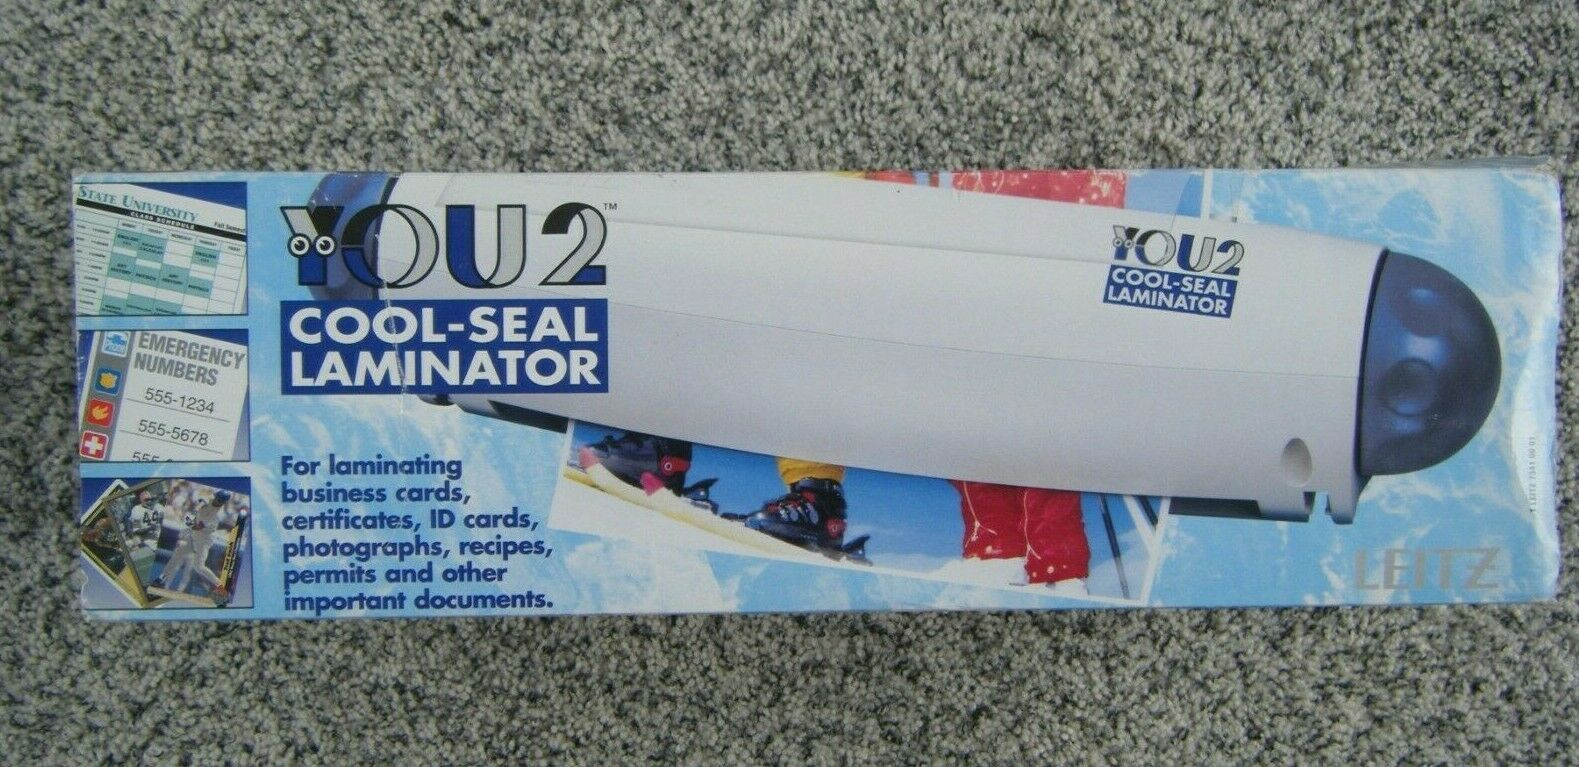 "YOU2 Cool-Seal Laminator laminate up to 9"" wide cards recipes photos permits etc"